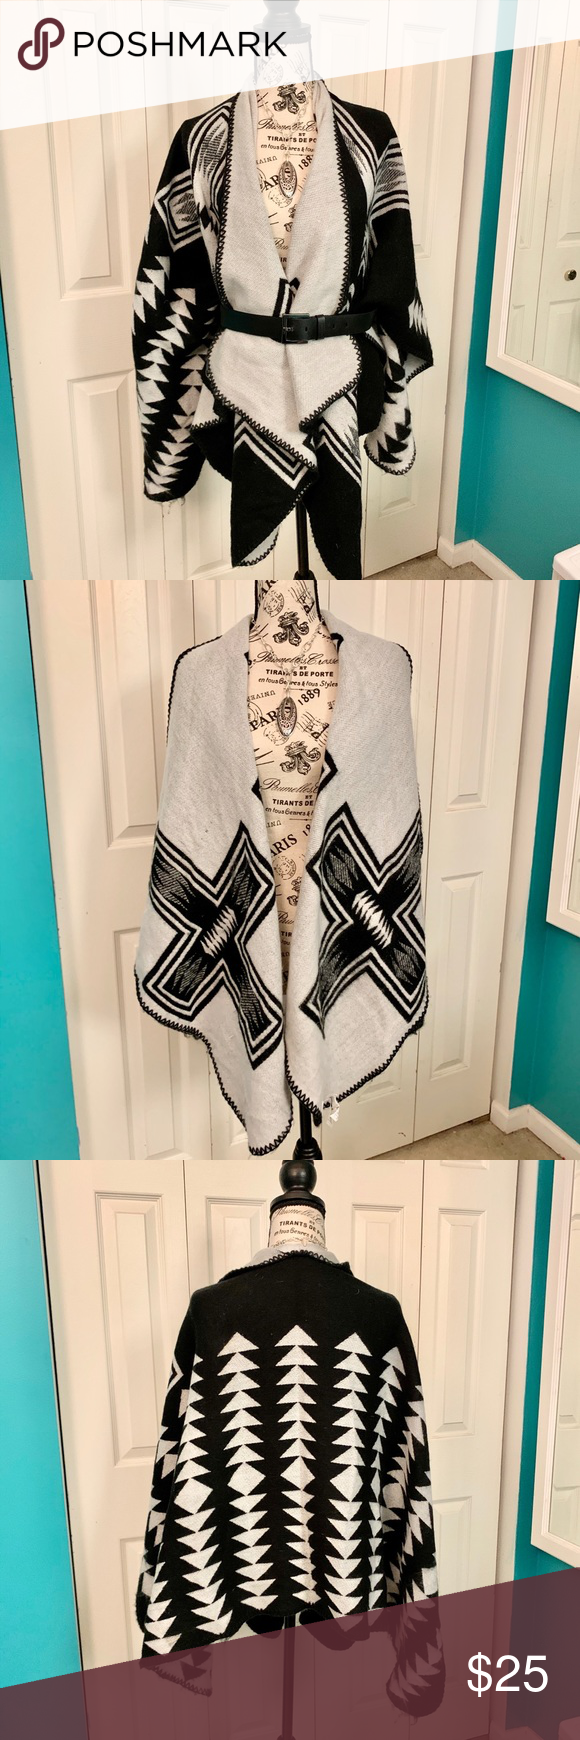 Old Navy Black and White Aztec wrap Super soft and warm, this black and white wr…